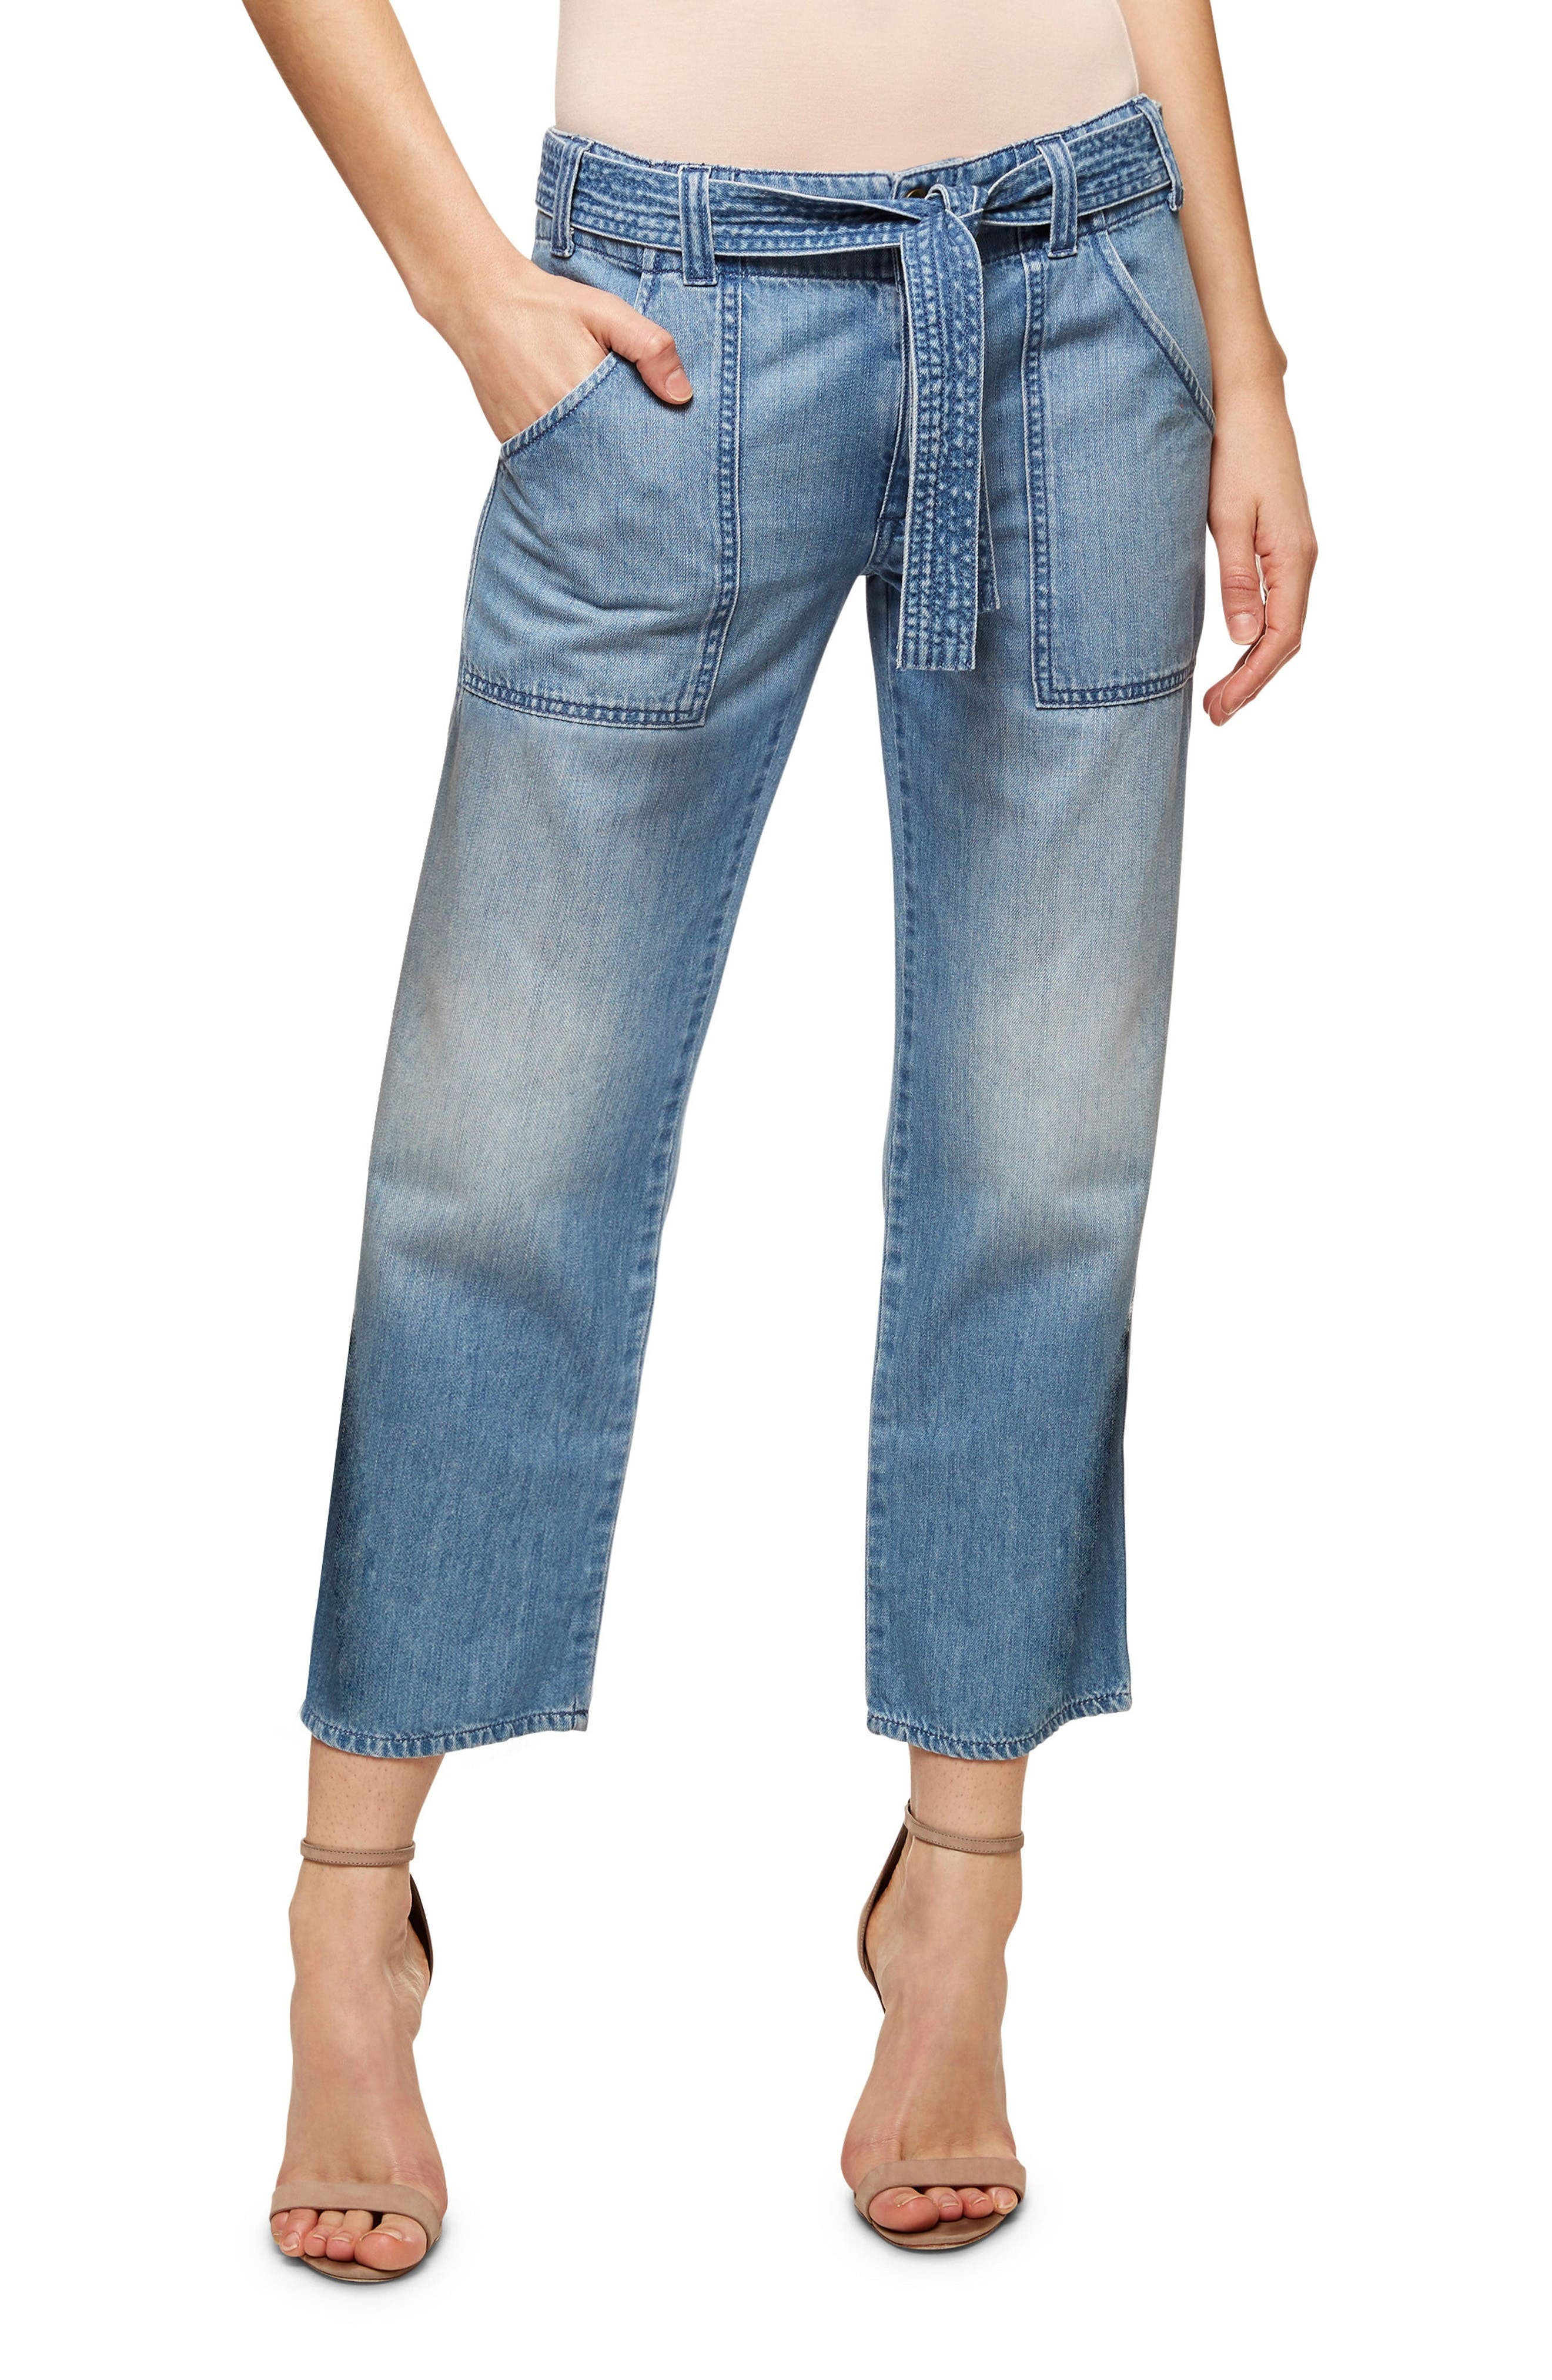 Alternate Image 1 Selected - Sanctuary Karate Belted Crop Jeans (Simona)